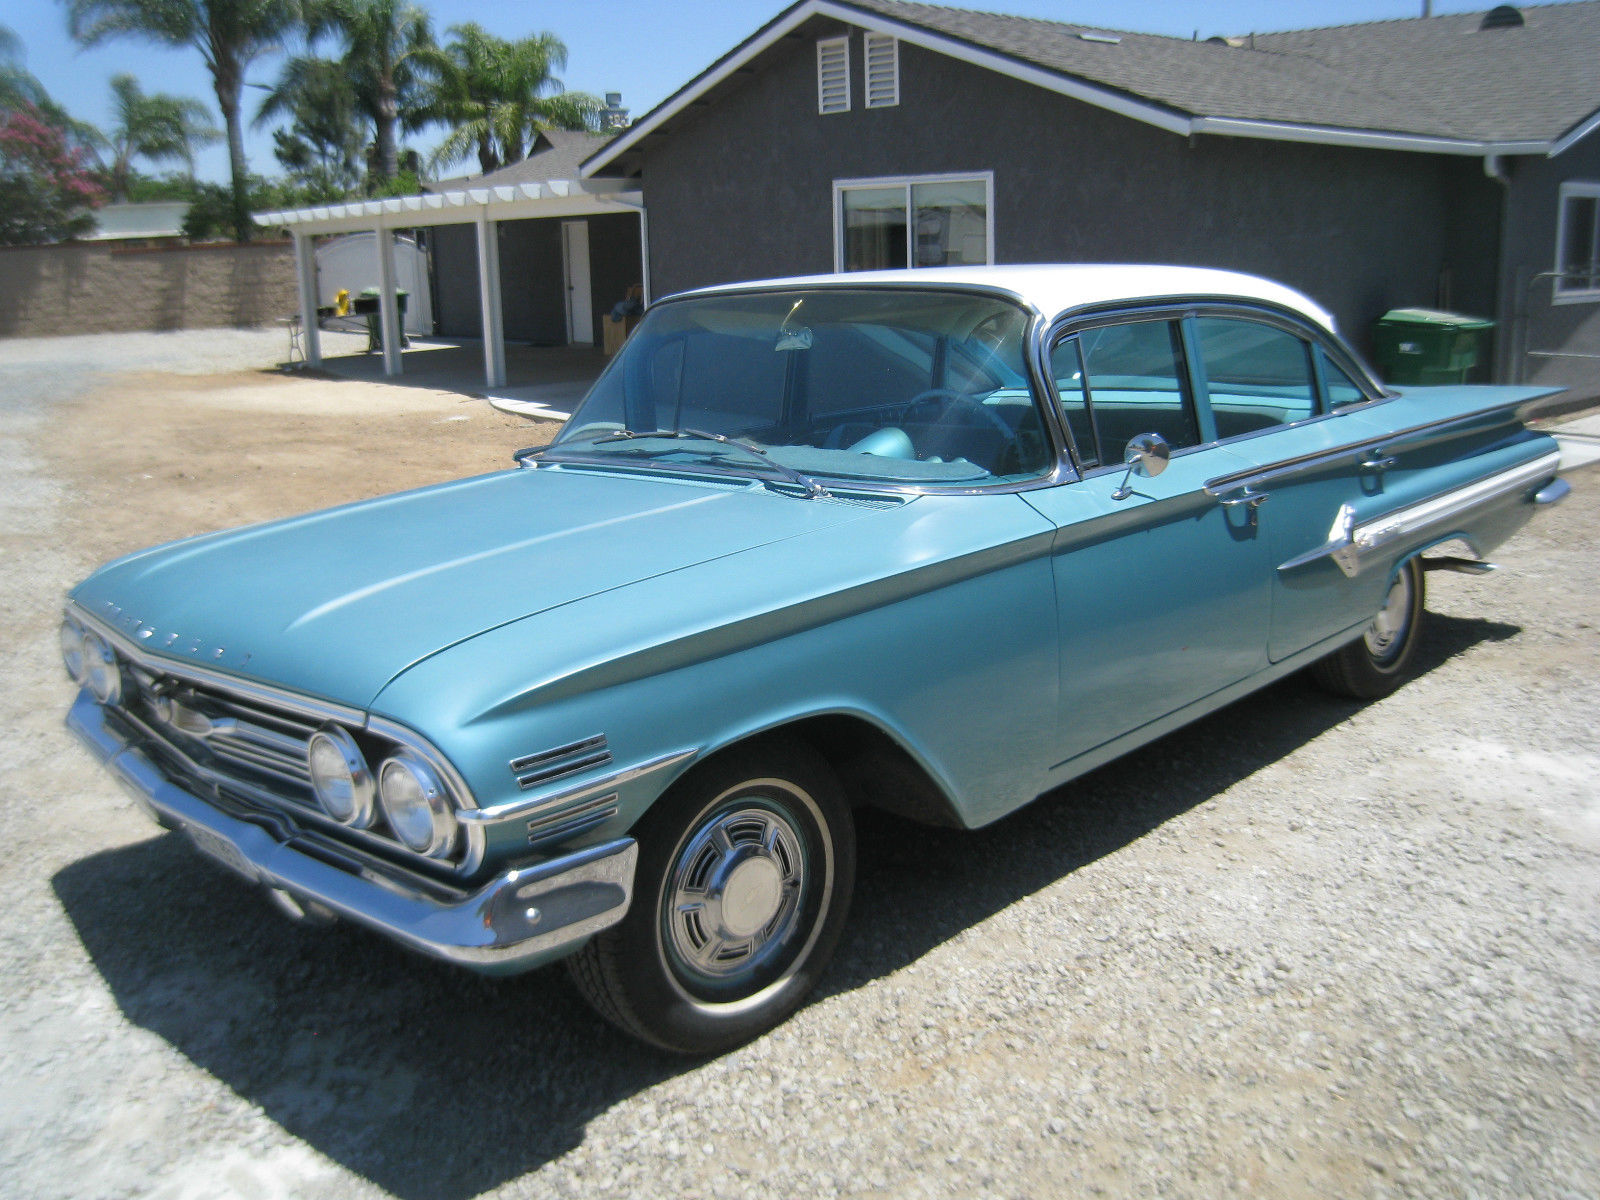 1960 chevy impala 4 door for sale in mira loma california united states. Black Bedroom Furniture Sets. Home Design Ideas